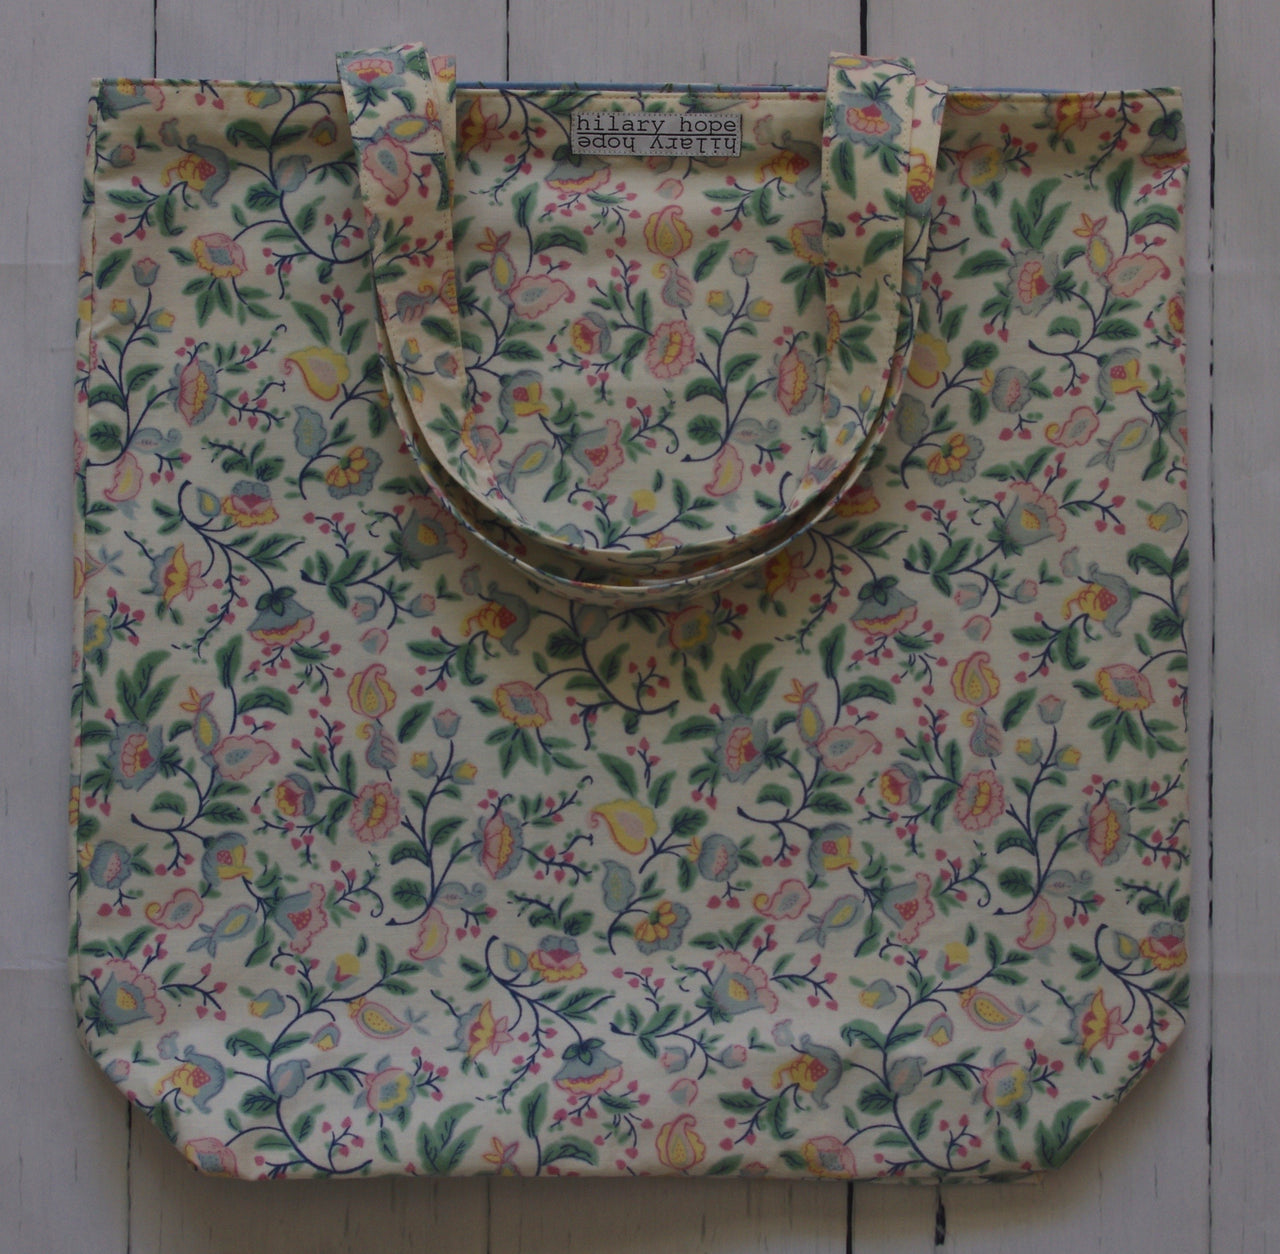 hilary-hope-paisleyesque-floral-tote-bag-front